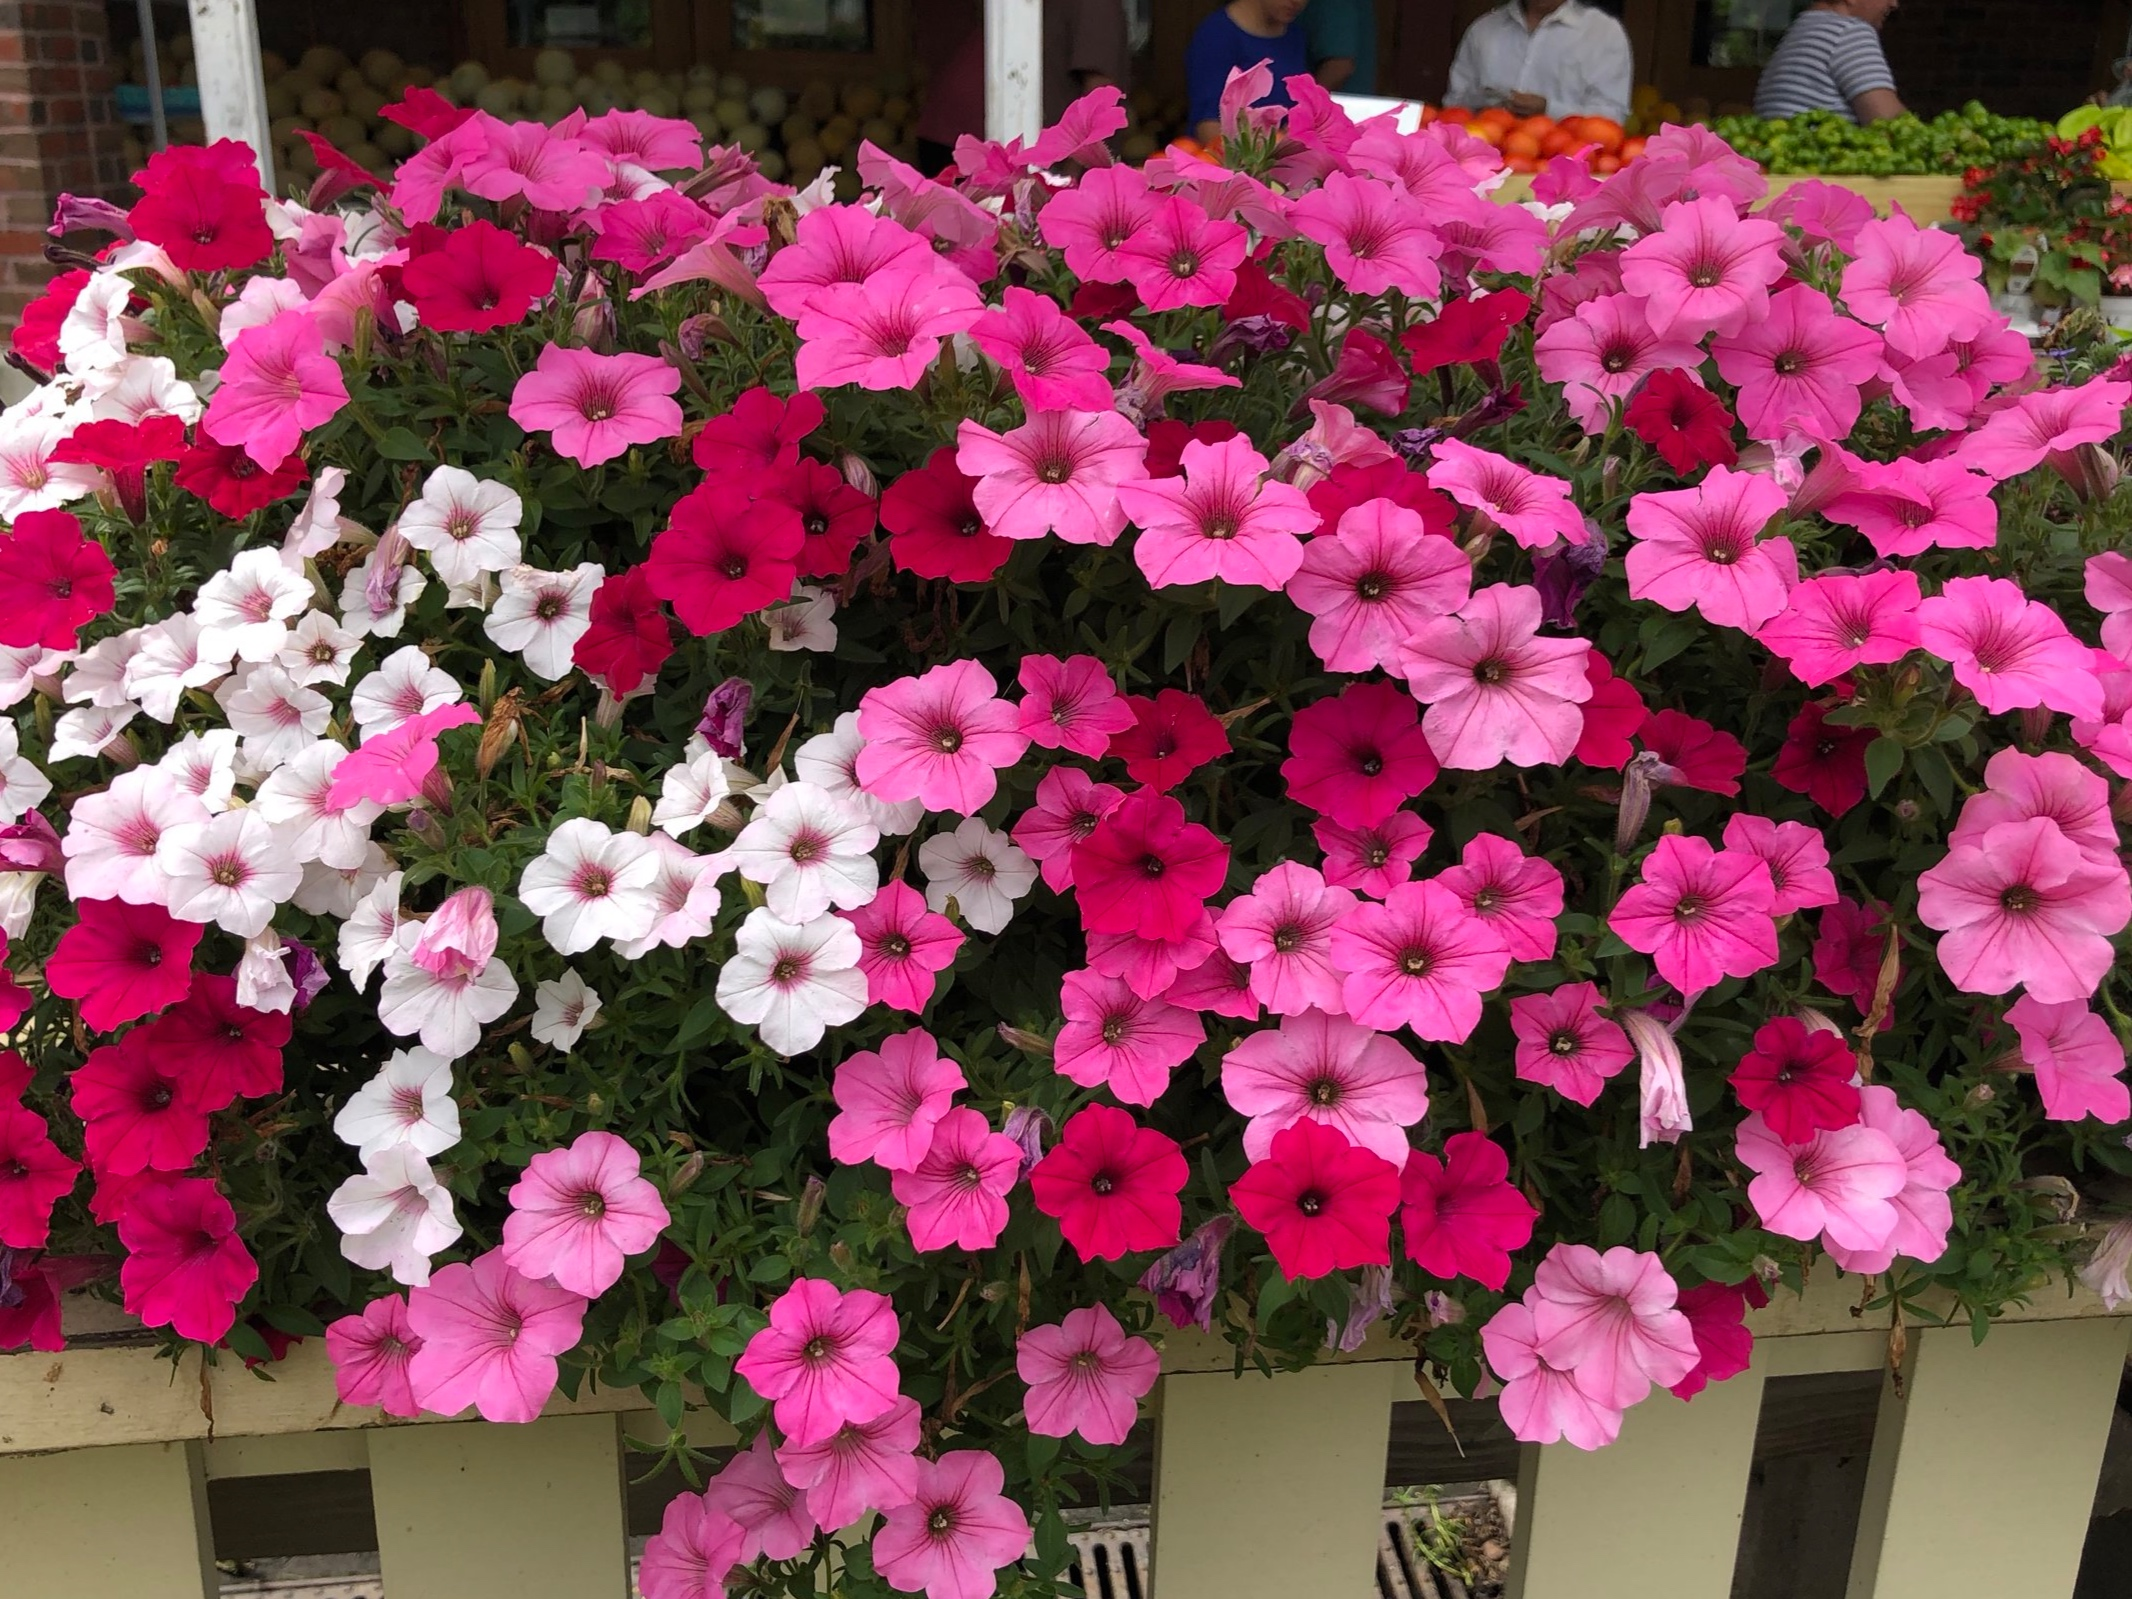 Colorful flower pots available for you and your friends!